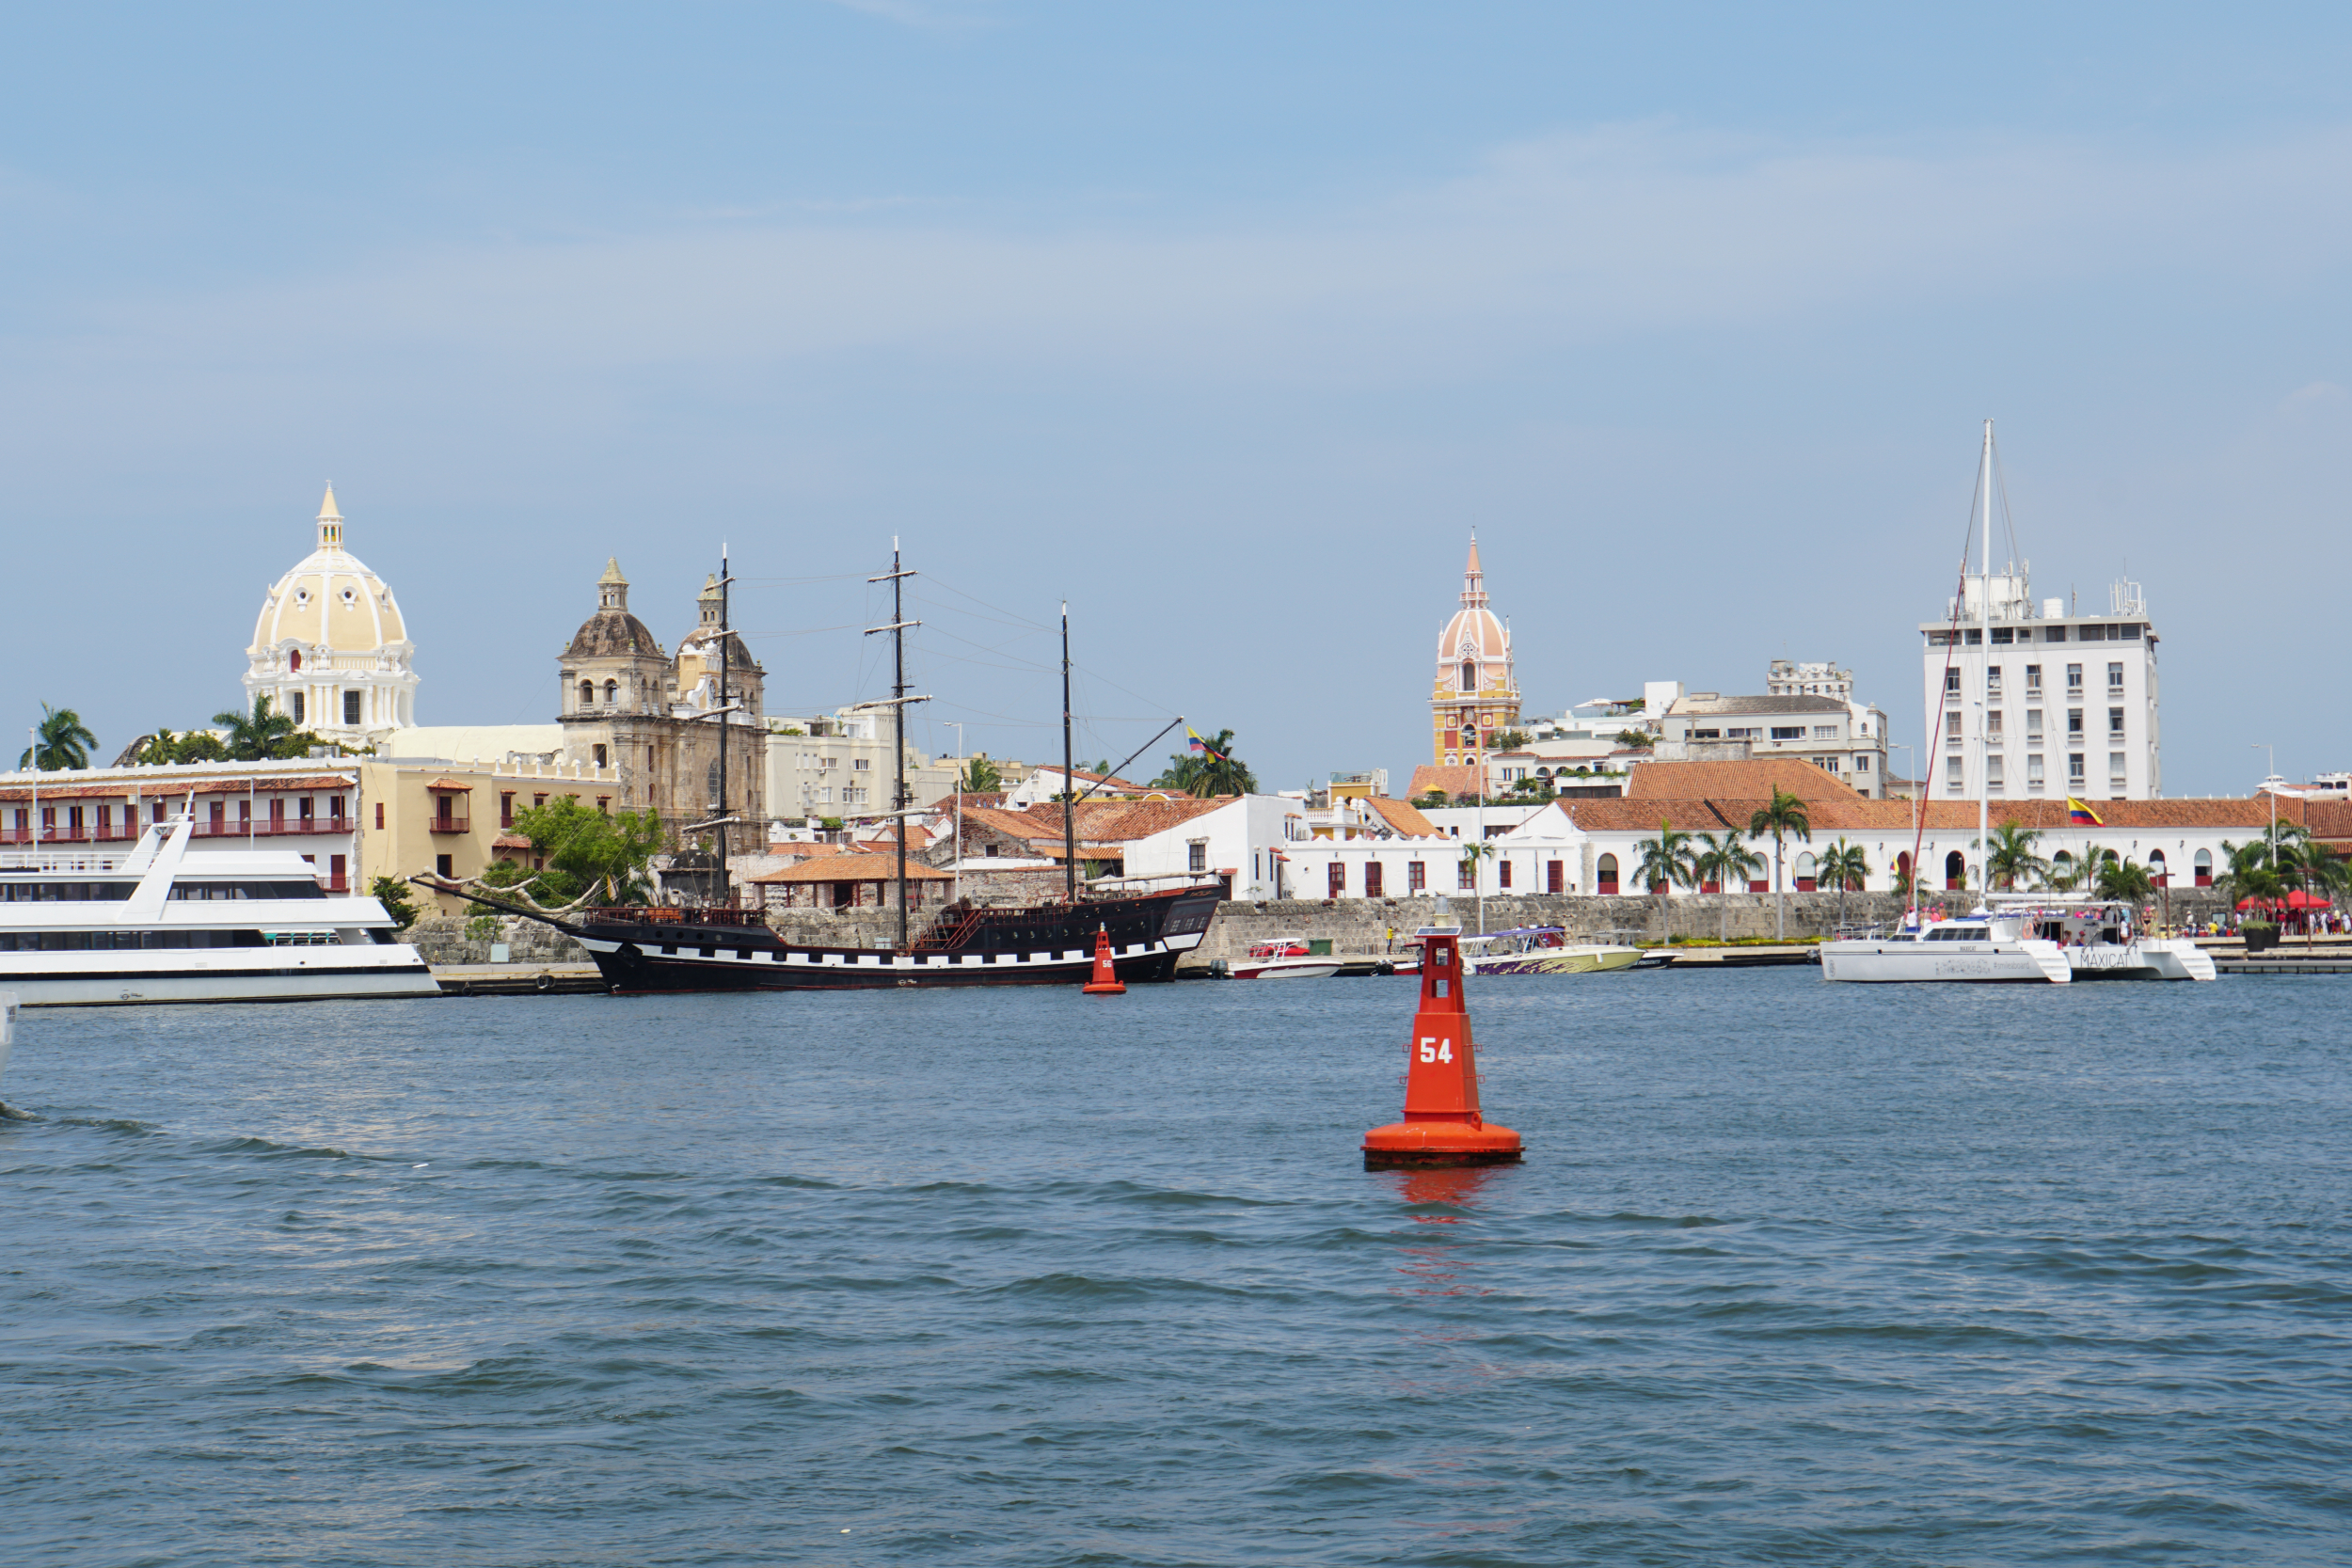 6. Cartagena from the water